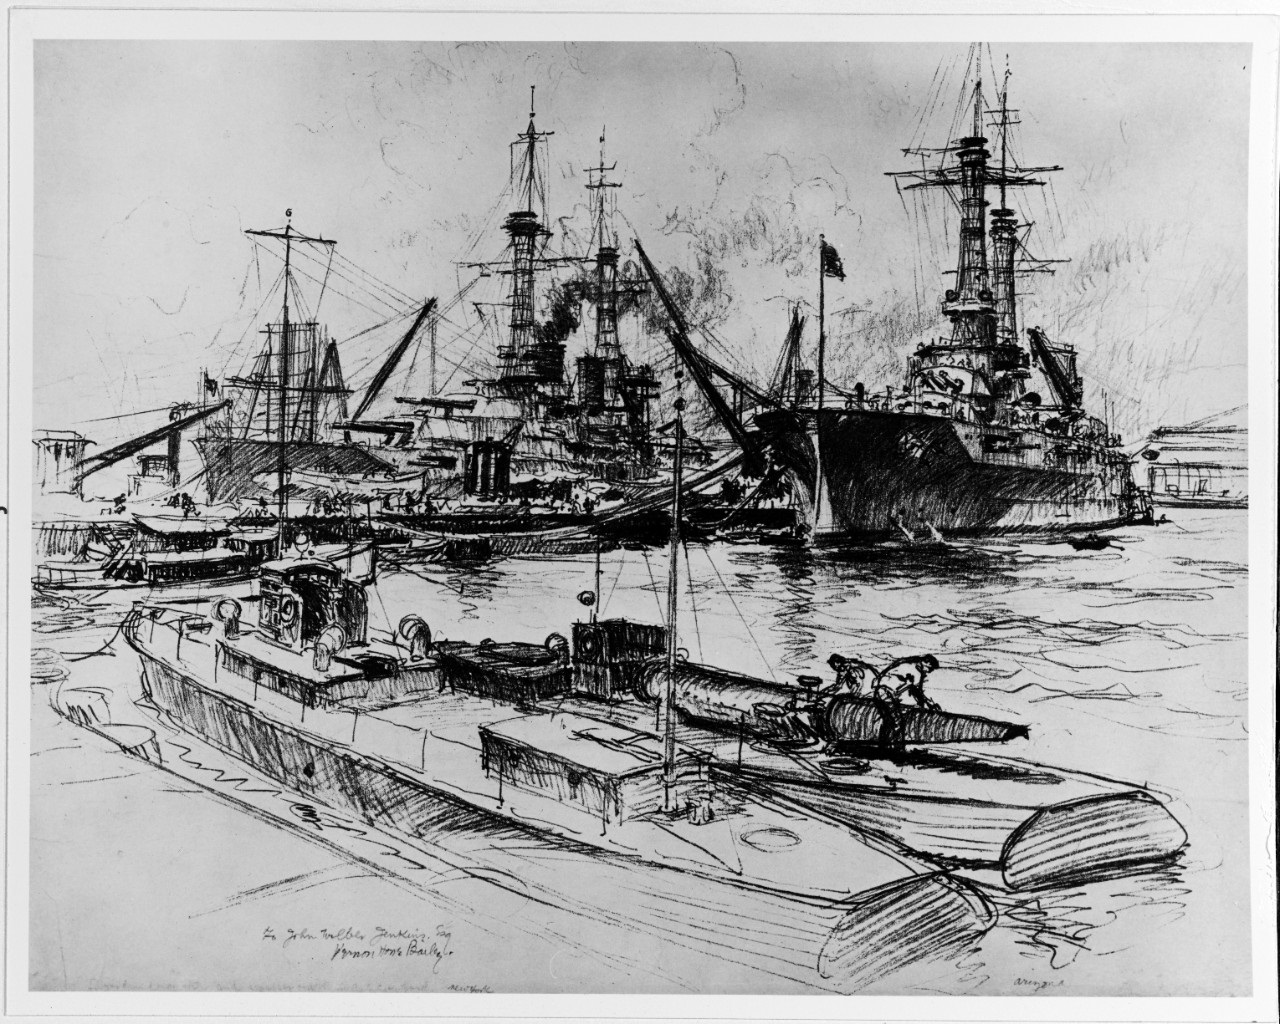 NH 86451 USS NEW YORK (BB-34) and USS ARIZONA (BB-39) fitting out note torpedo boat loading fish